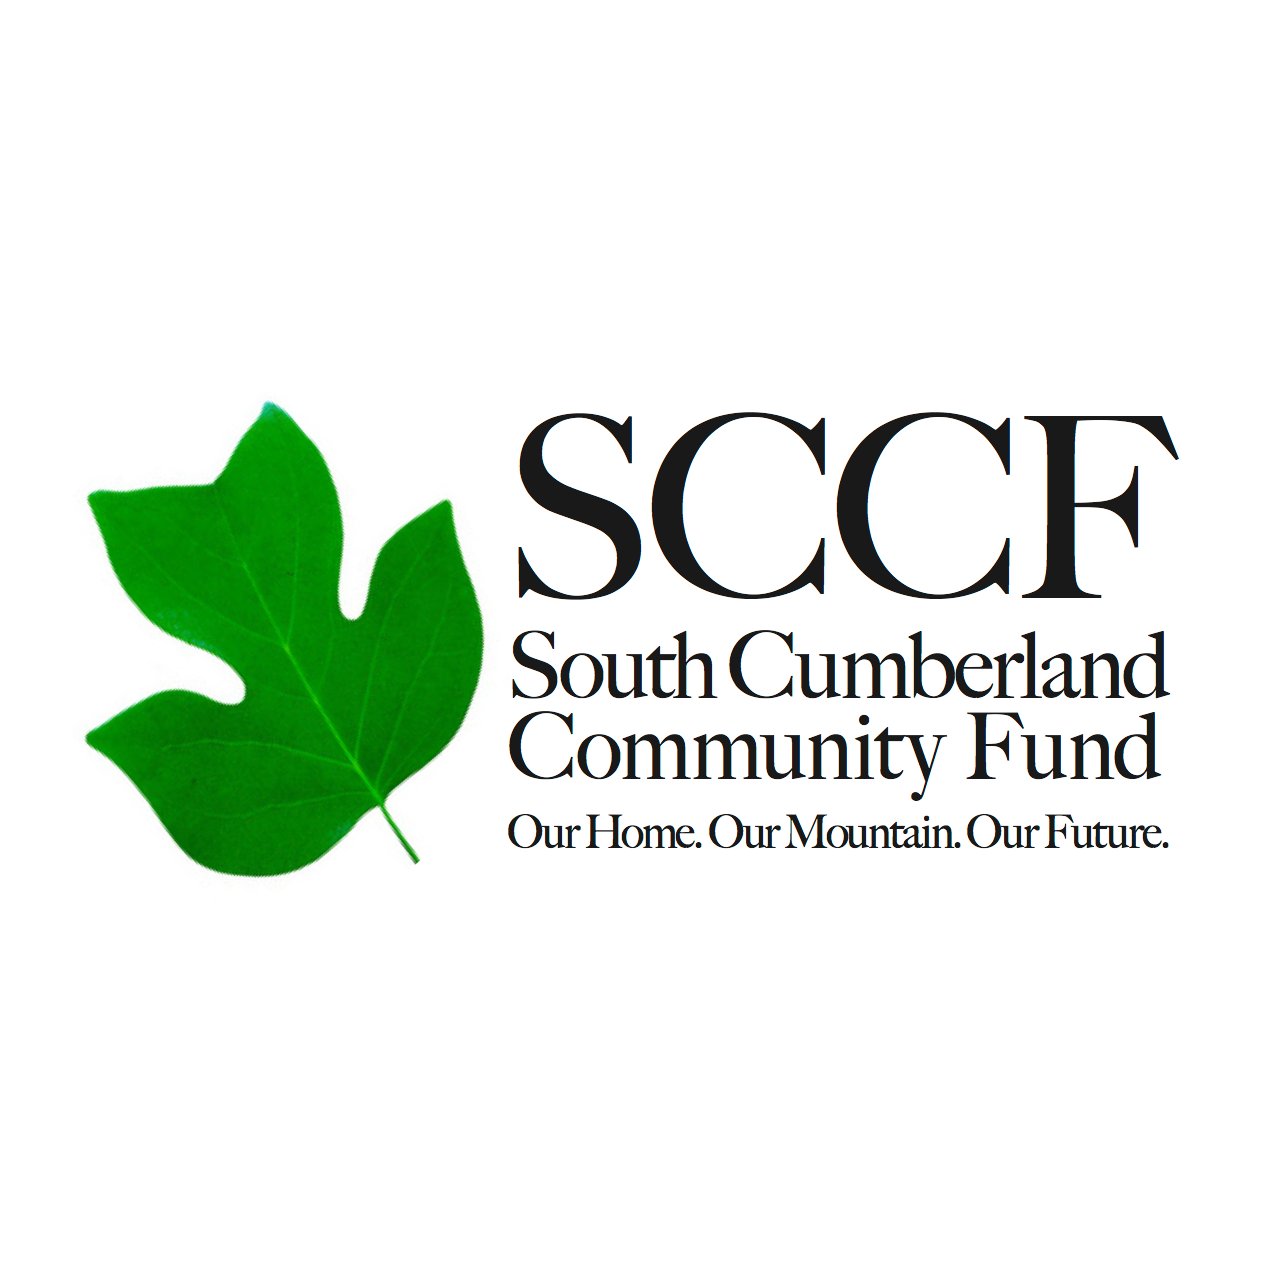 South Cumberland Community Fund